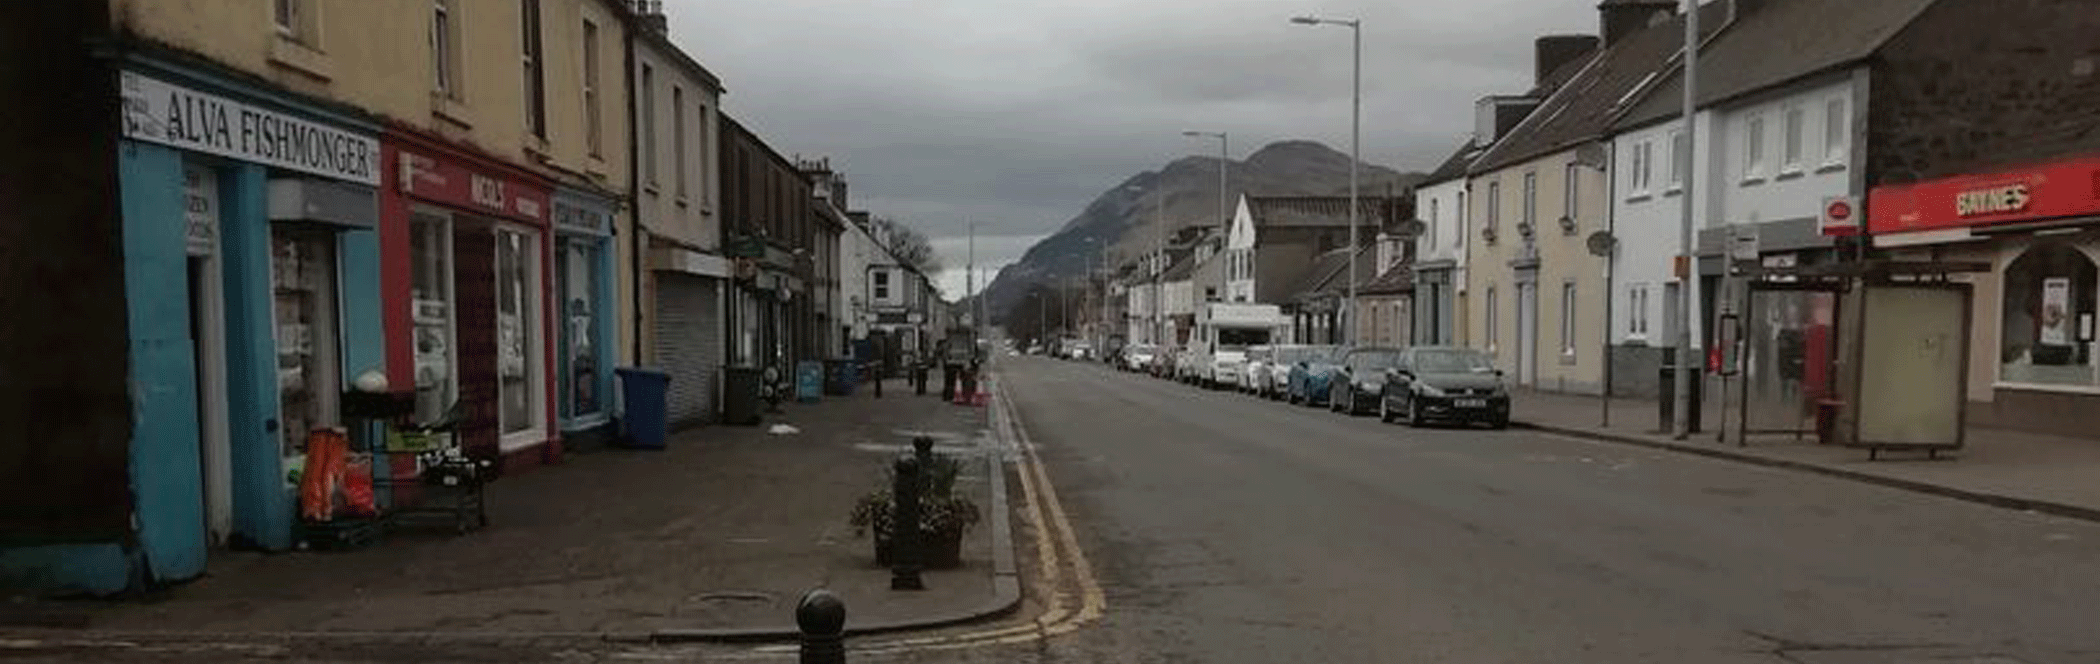 Alva main street £1.6m upgrade